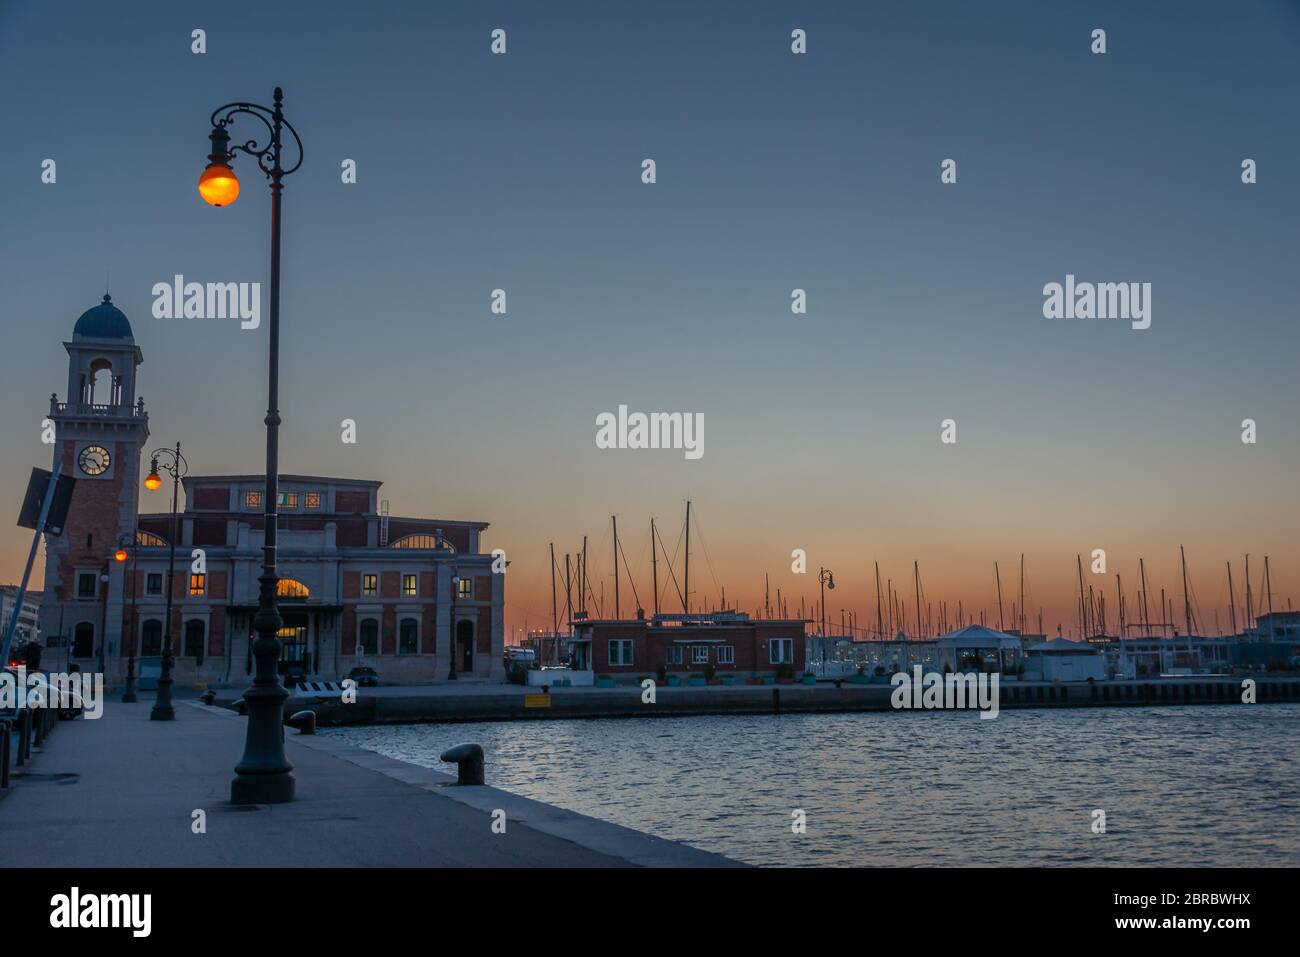 The Molo Audace pier of Trieste in a winter evening Stock Photo